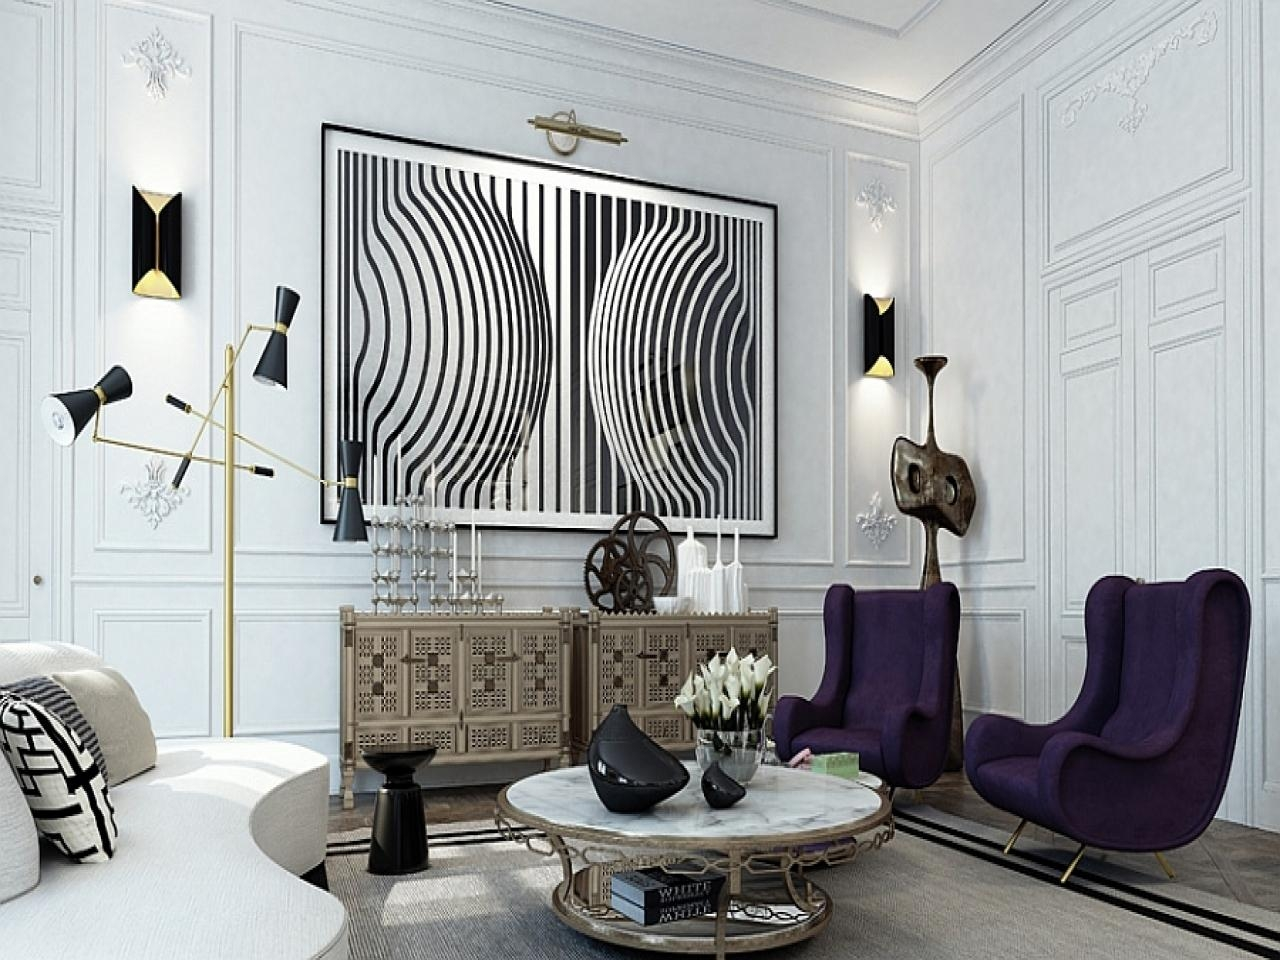 Art For Apartment Walls, Black And White Paris Wall Art (Image 5 of 20)